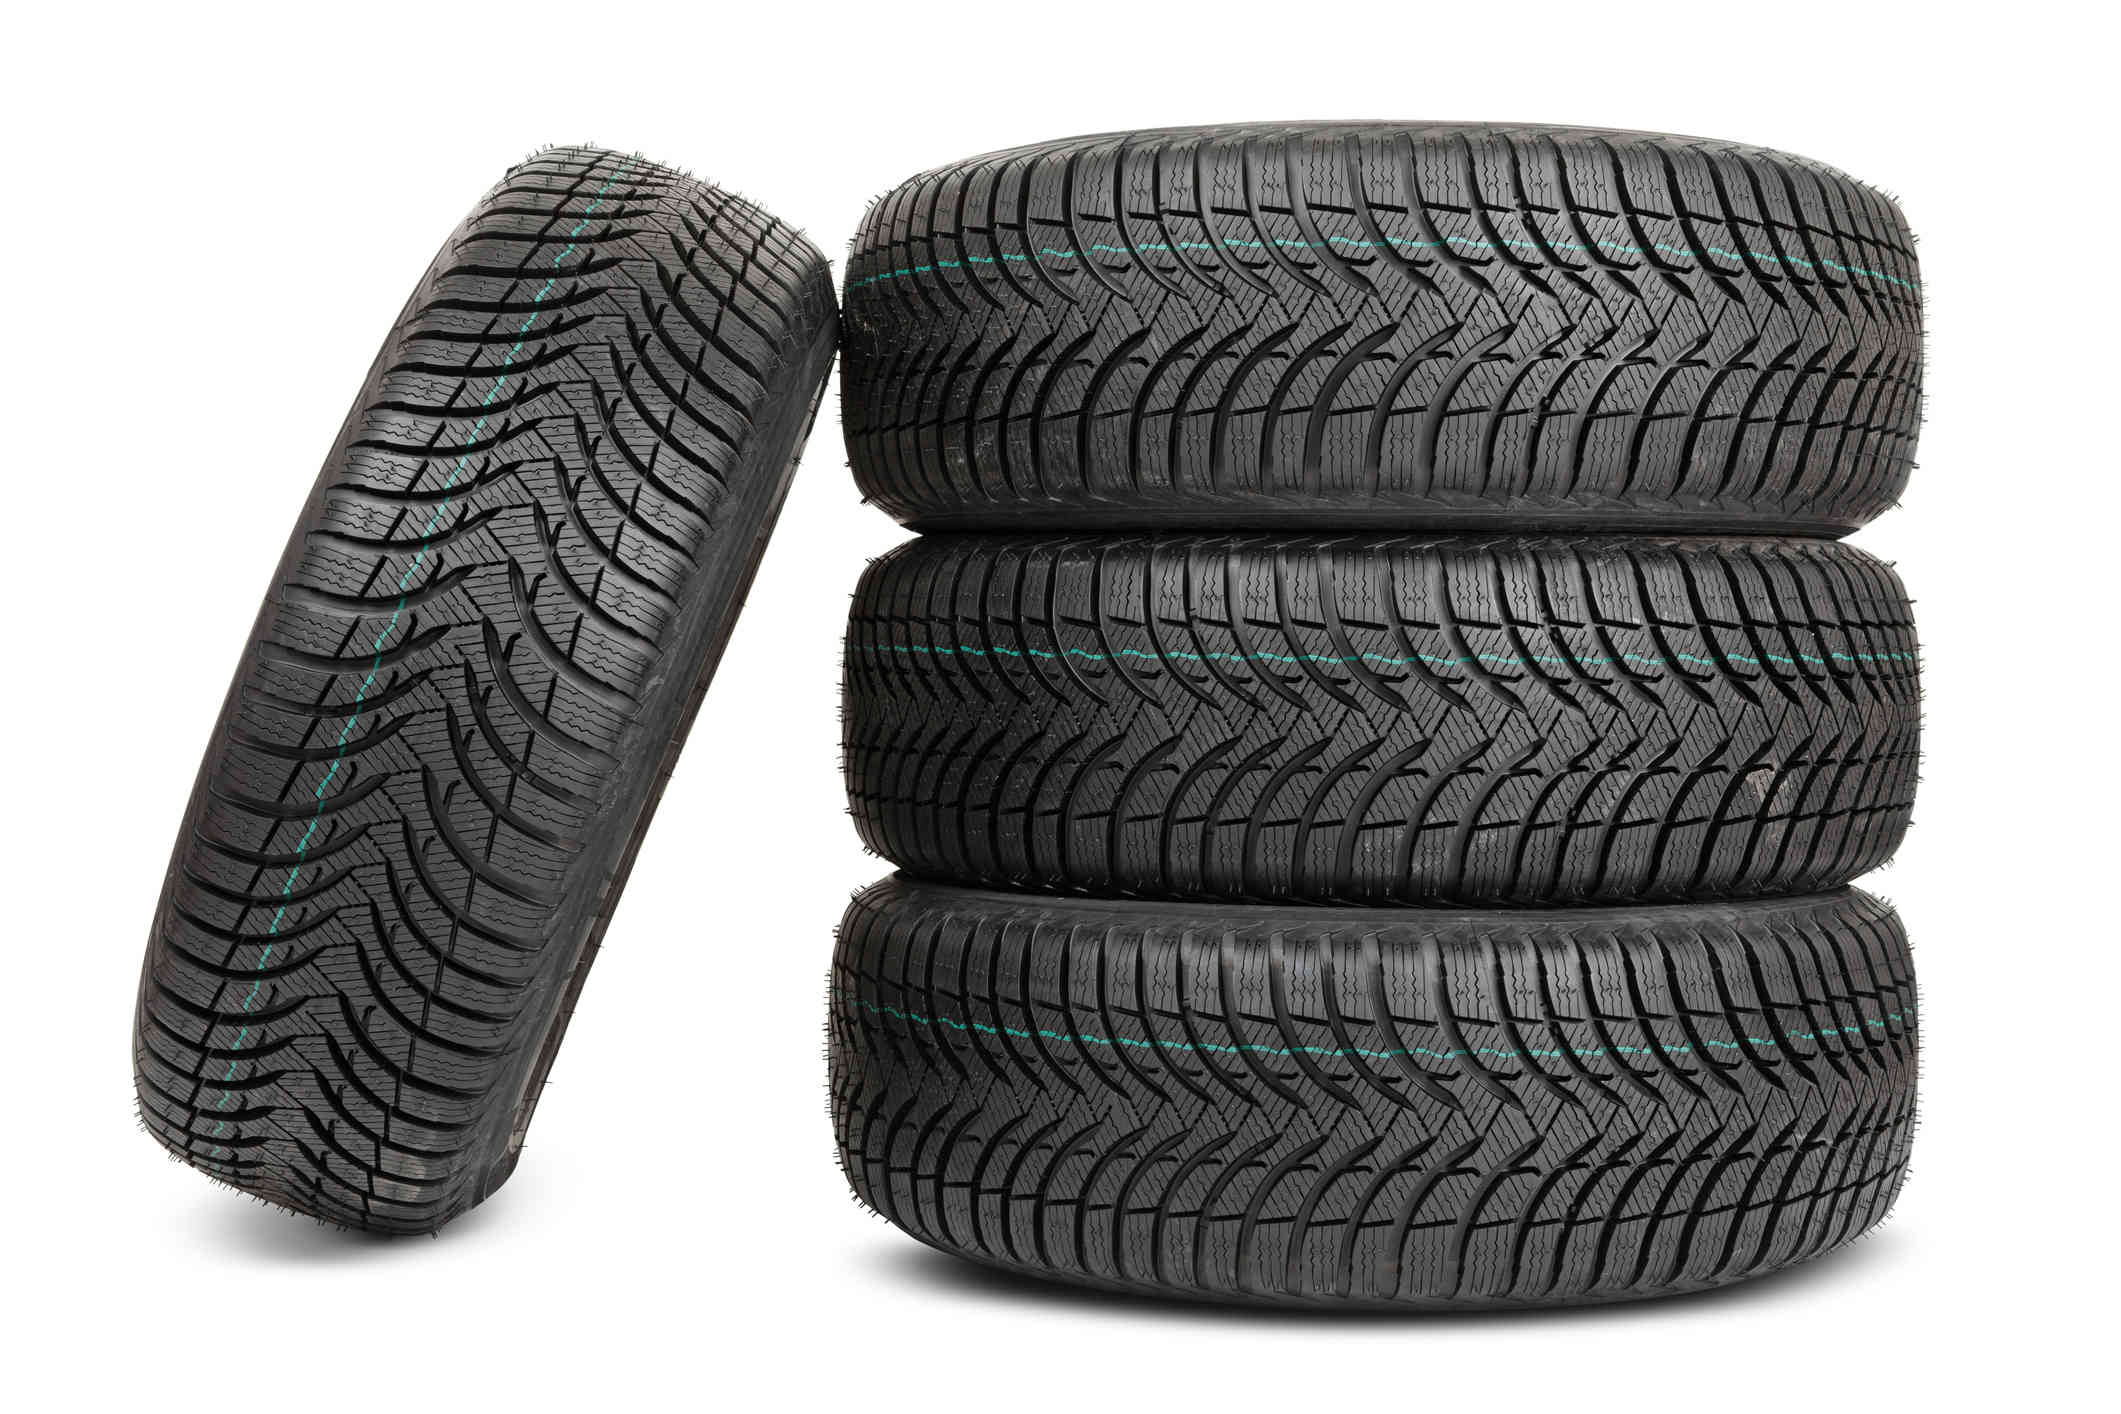 The Road to Safety: What's Ushering Change in Commercial Vehicle Tires Market?